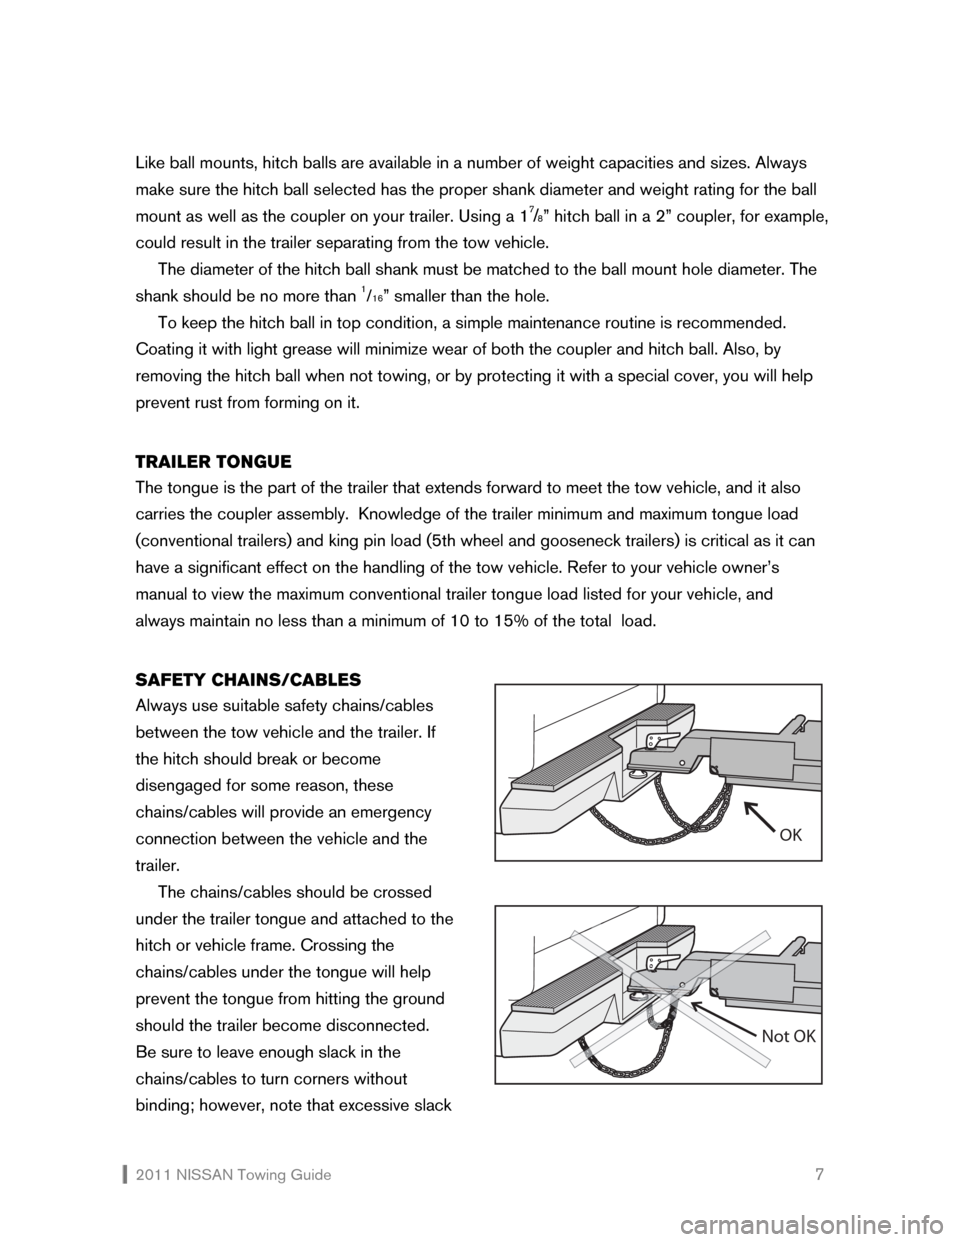 NISSAN XTERRA 2011 N50 / 2.G Towing Guide, Page 8